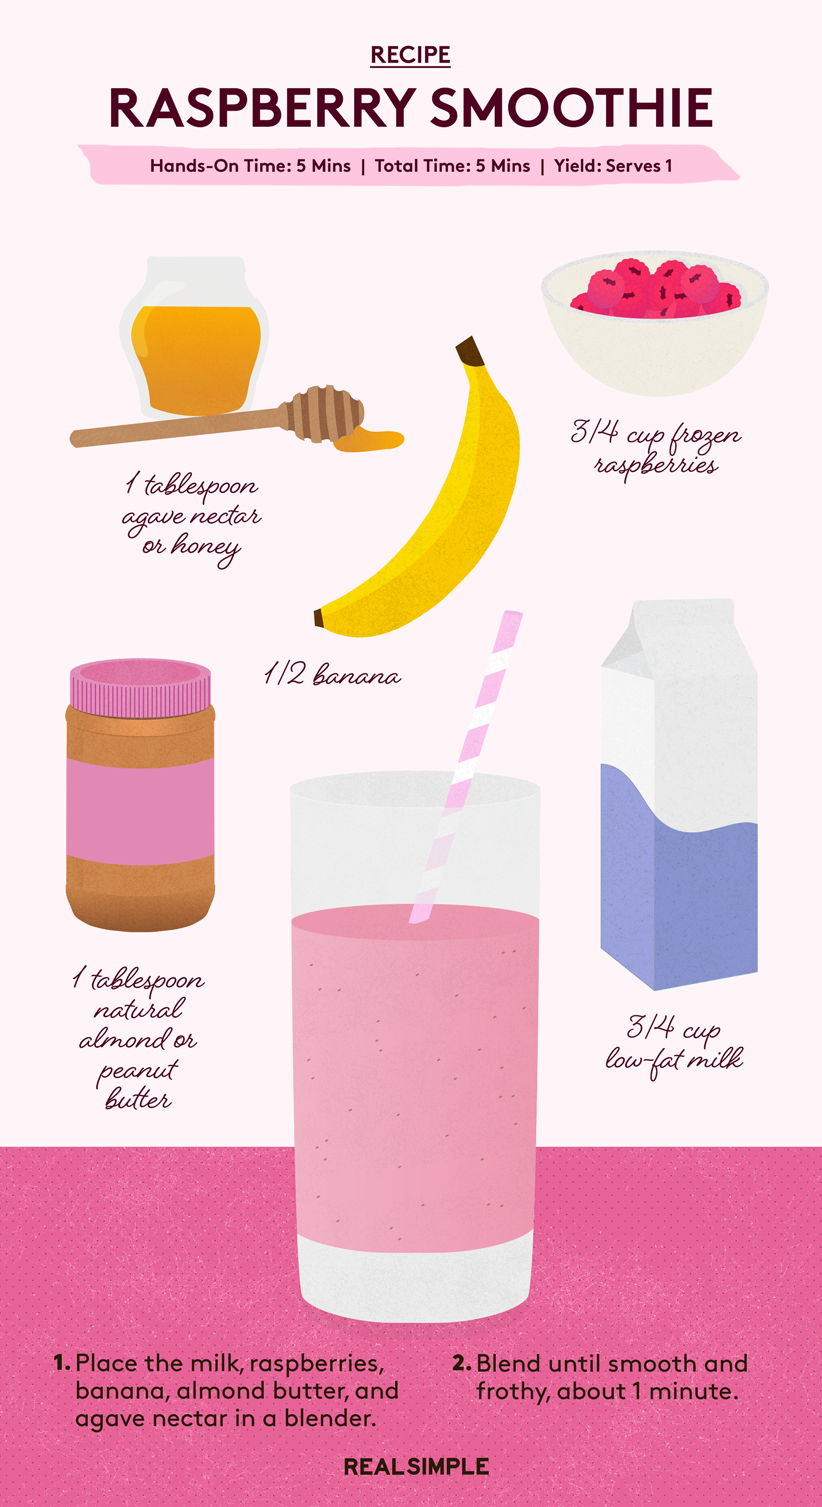 Raspberry and Nut Smoothie